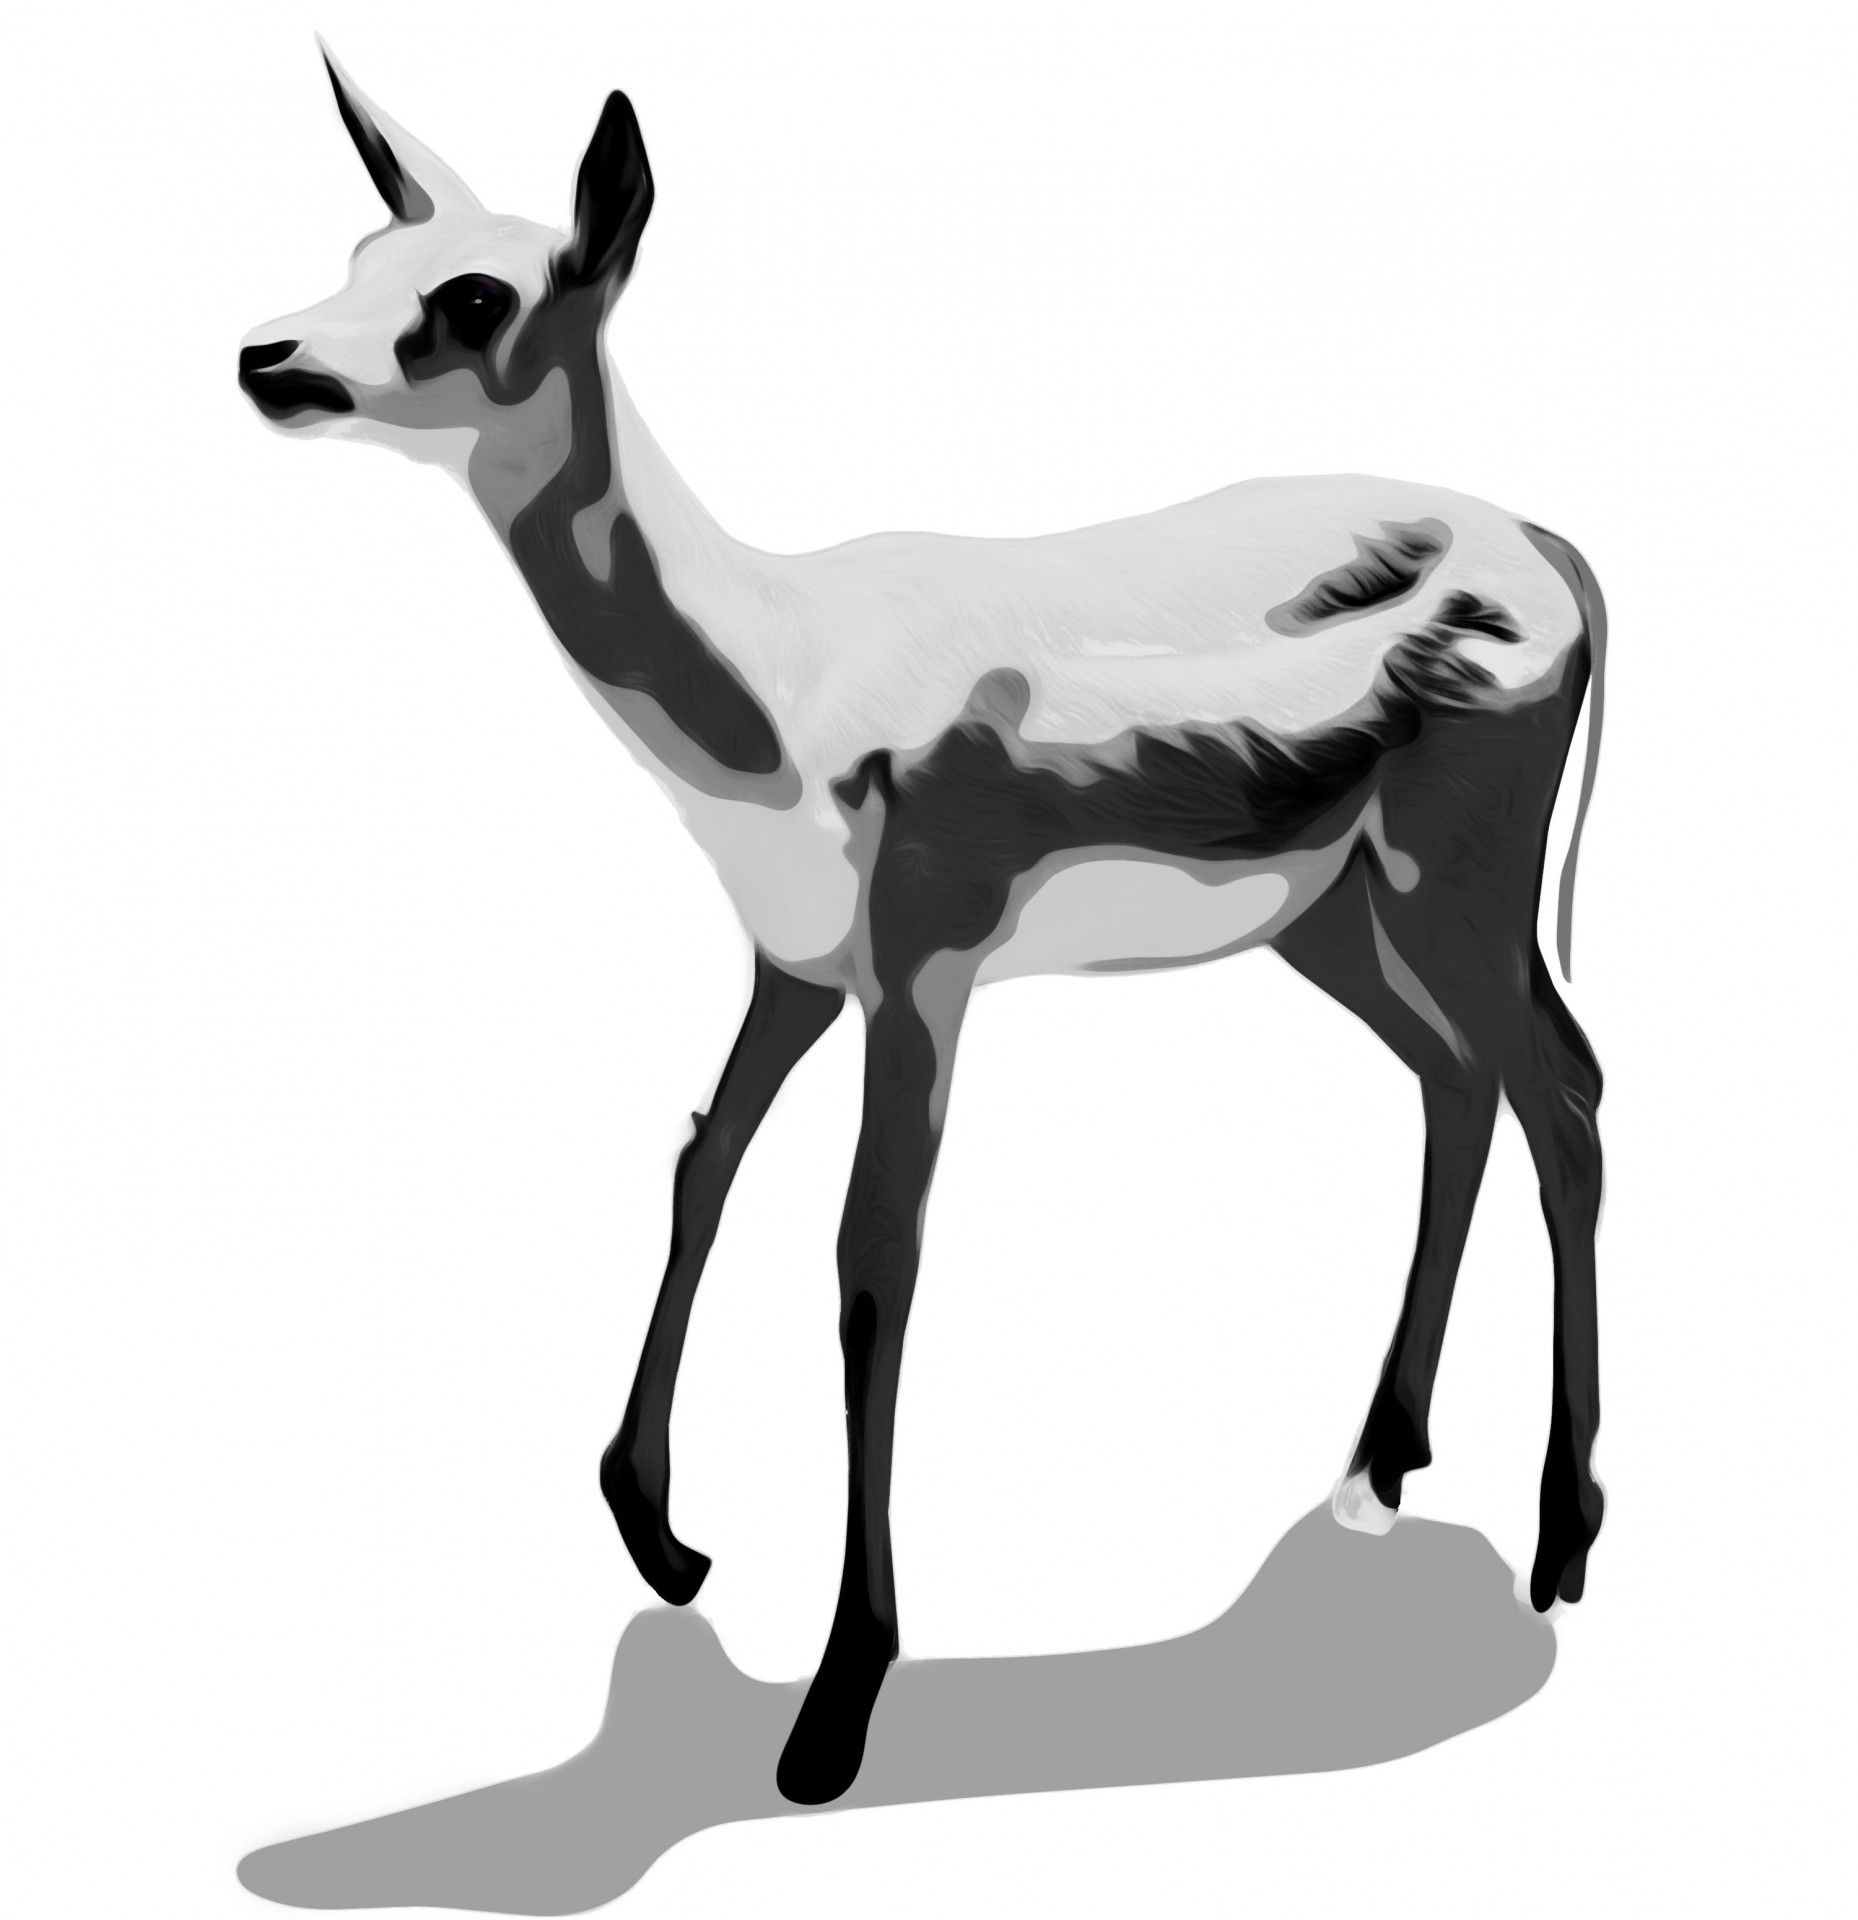 1858x1920 Clip Art Deer Free Stock Photo